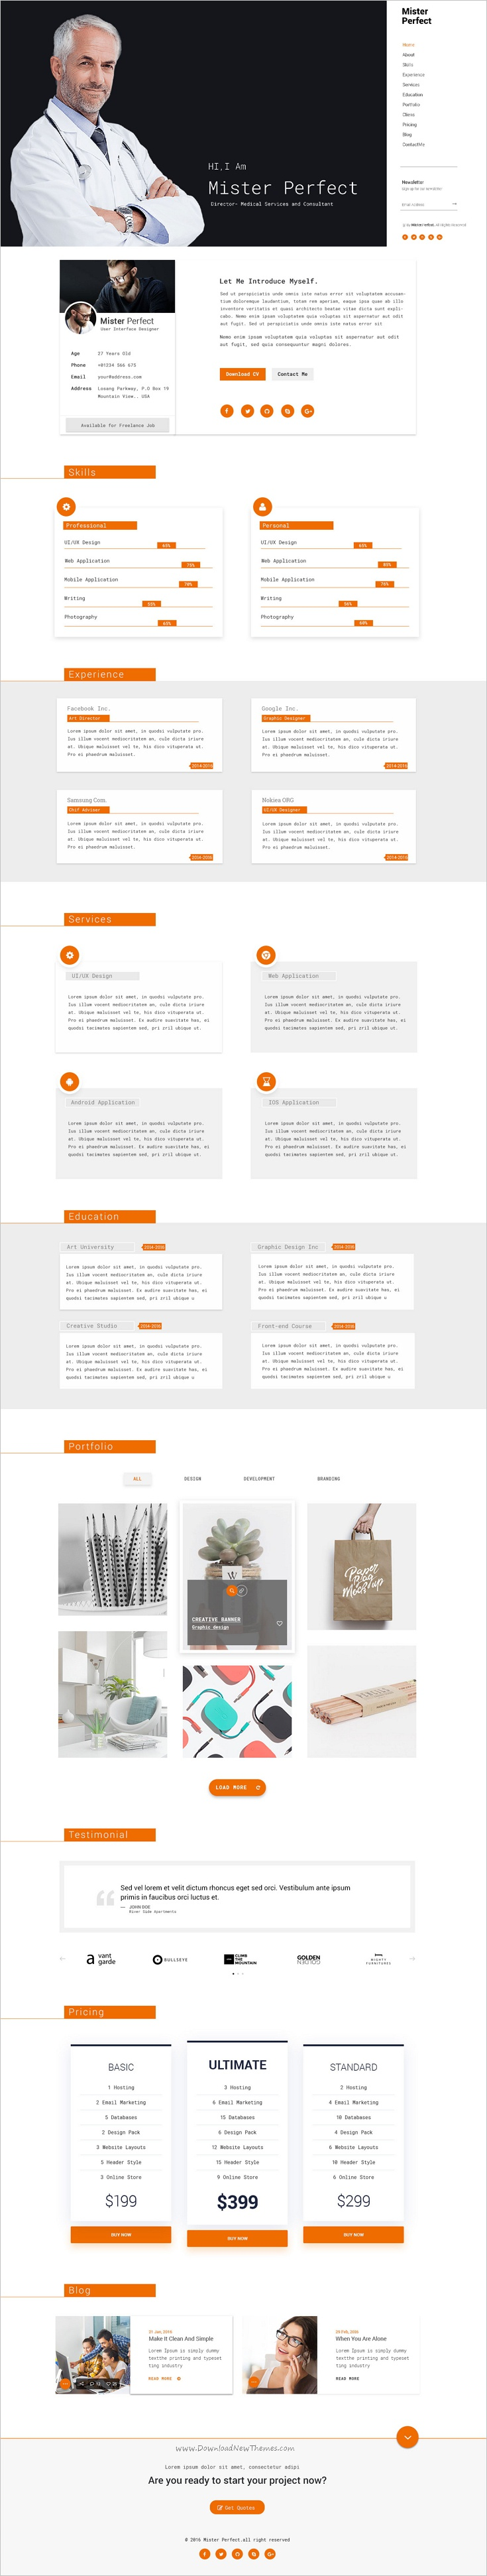 Mister Perfect  Minimal CvResume Psd Template  Mr Perfect Psd